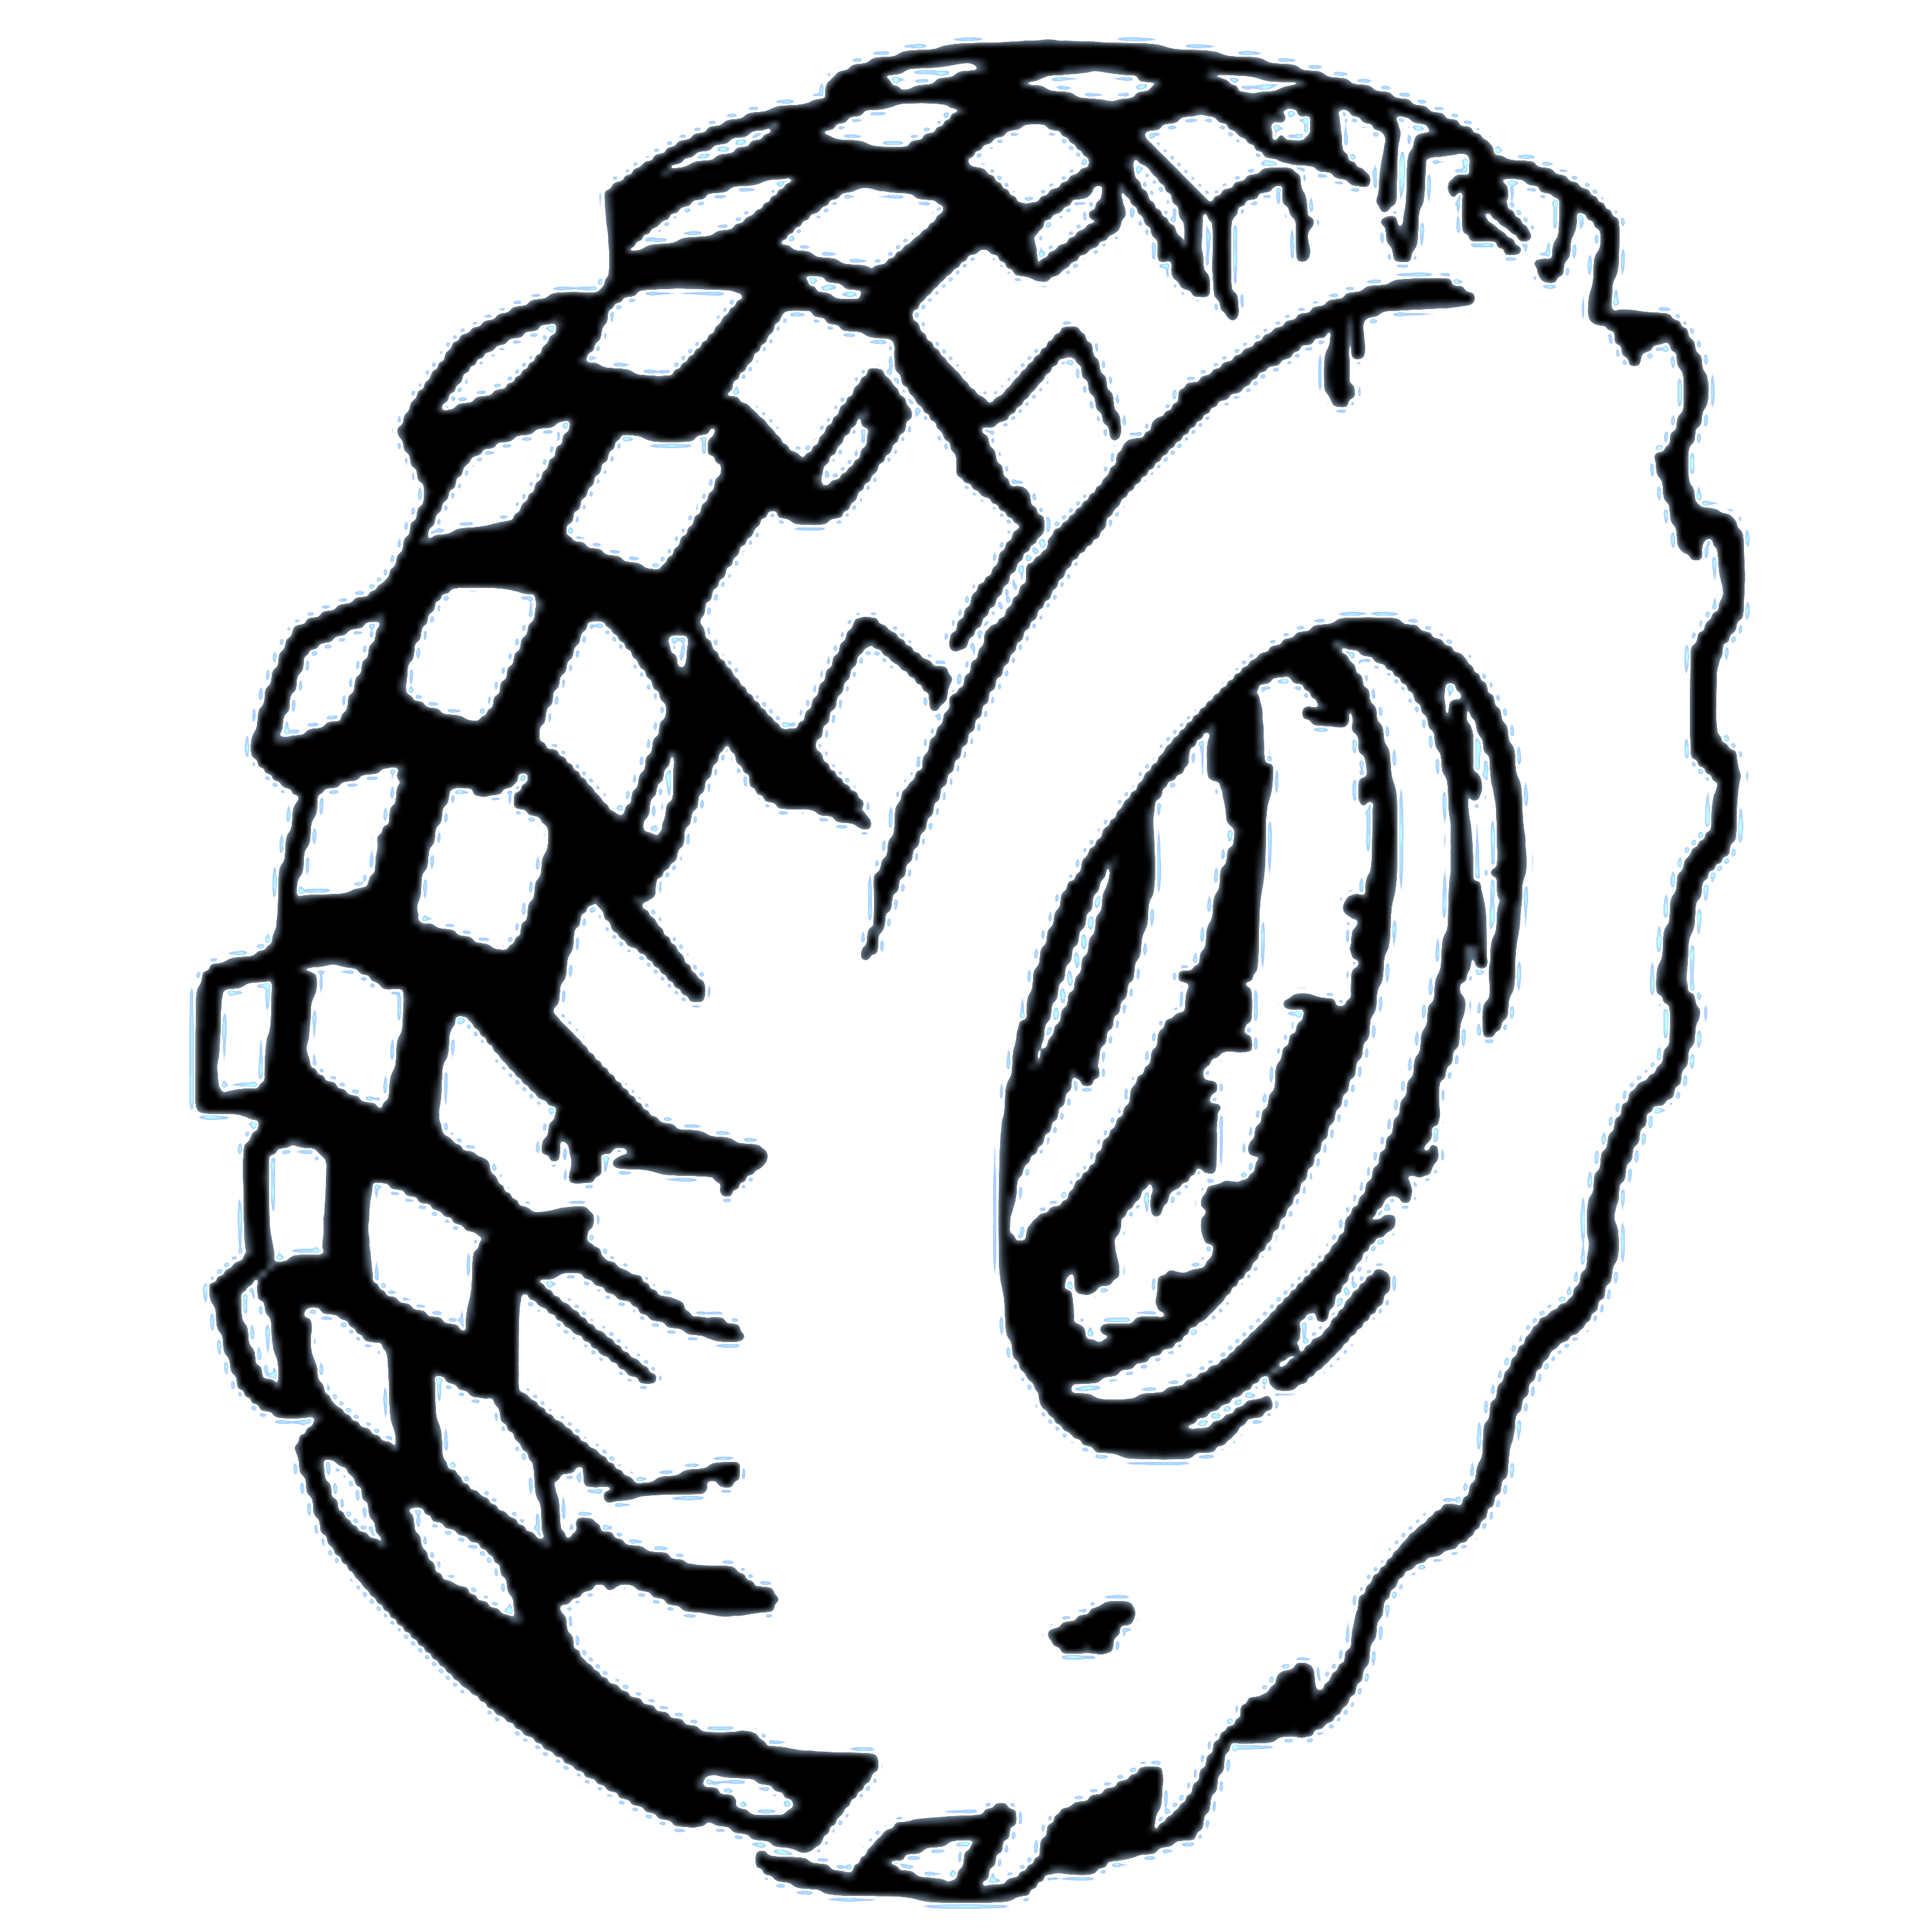 White tire clipart clipart freeuse library Tire Tracks Clipart | Free download best Tire Tracks Clipart ... clipart freeuse library